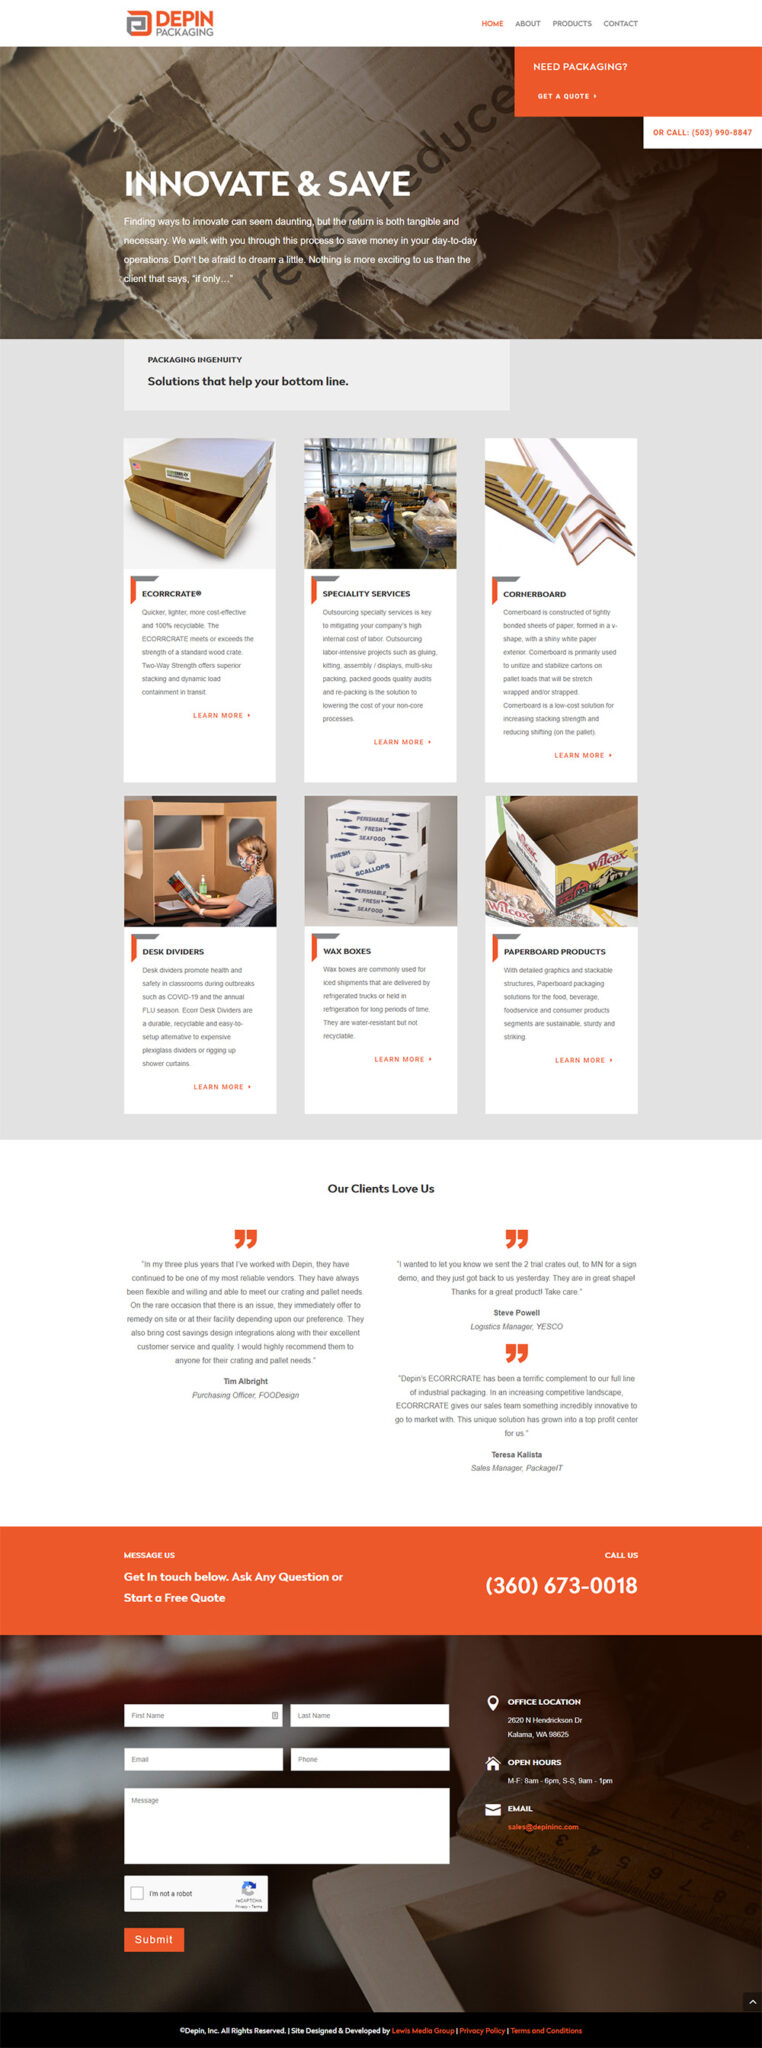 Depin Packaging home page after redesign